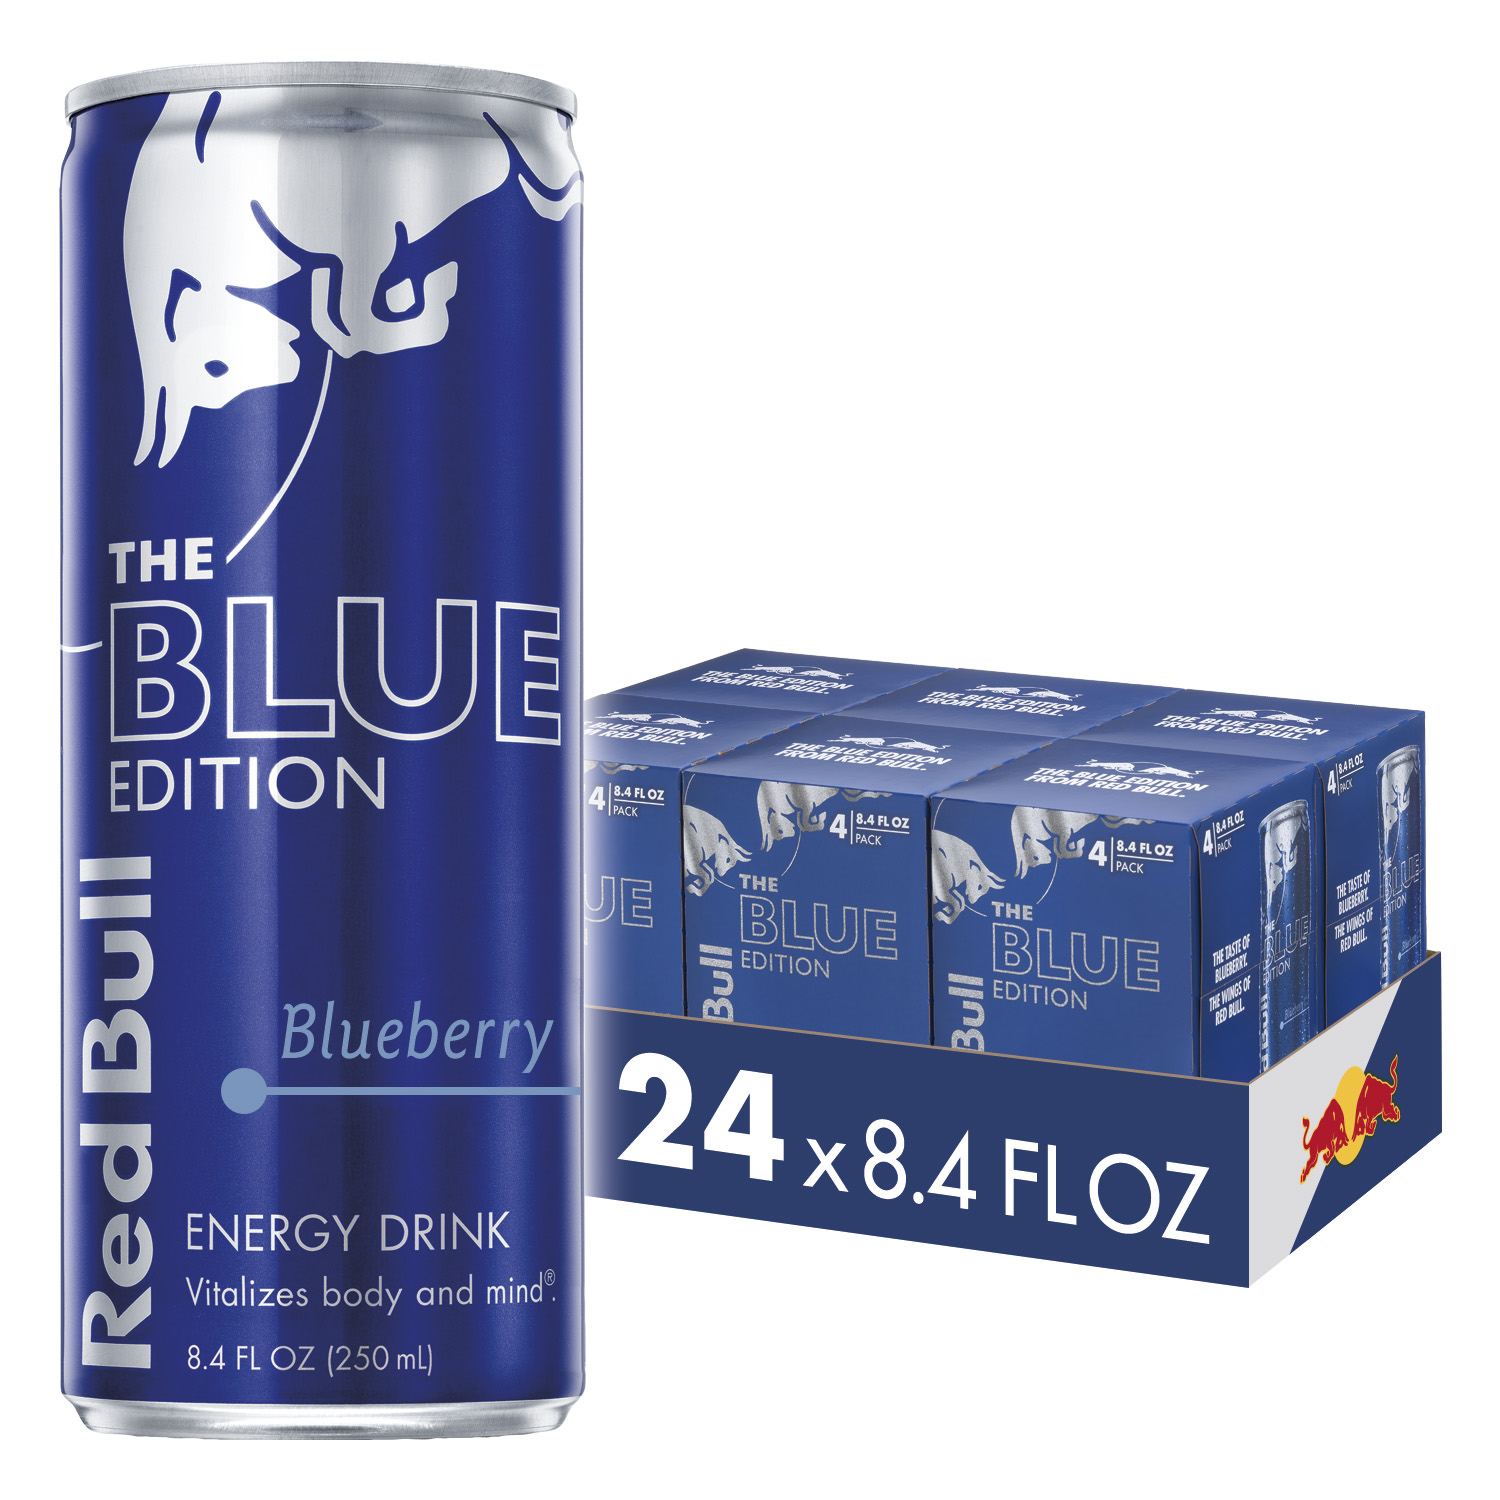 Red Bull Blue Edition Energy Drink, Blueberry, 8.4 Fl Oz, 24 Count